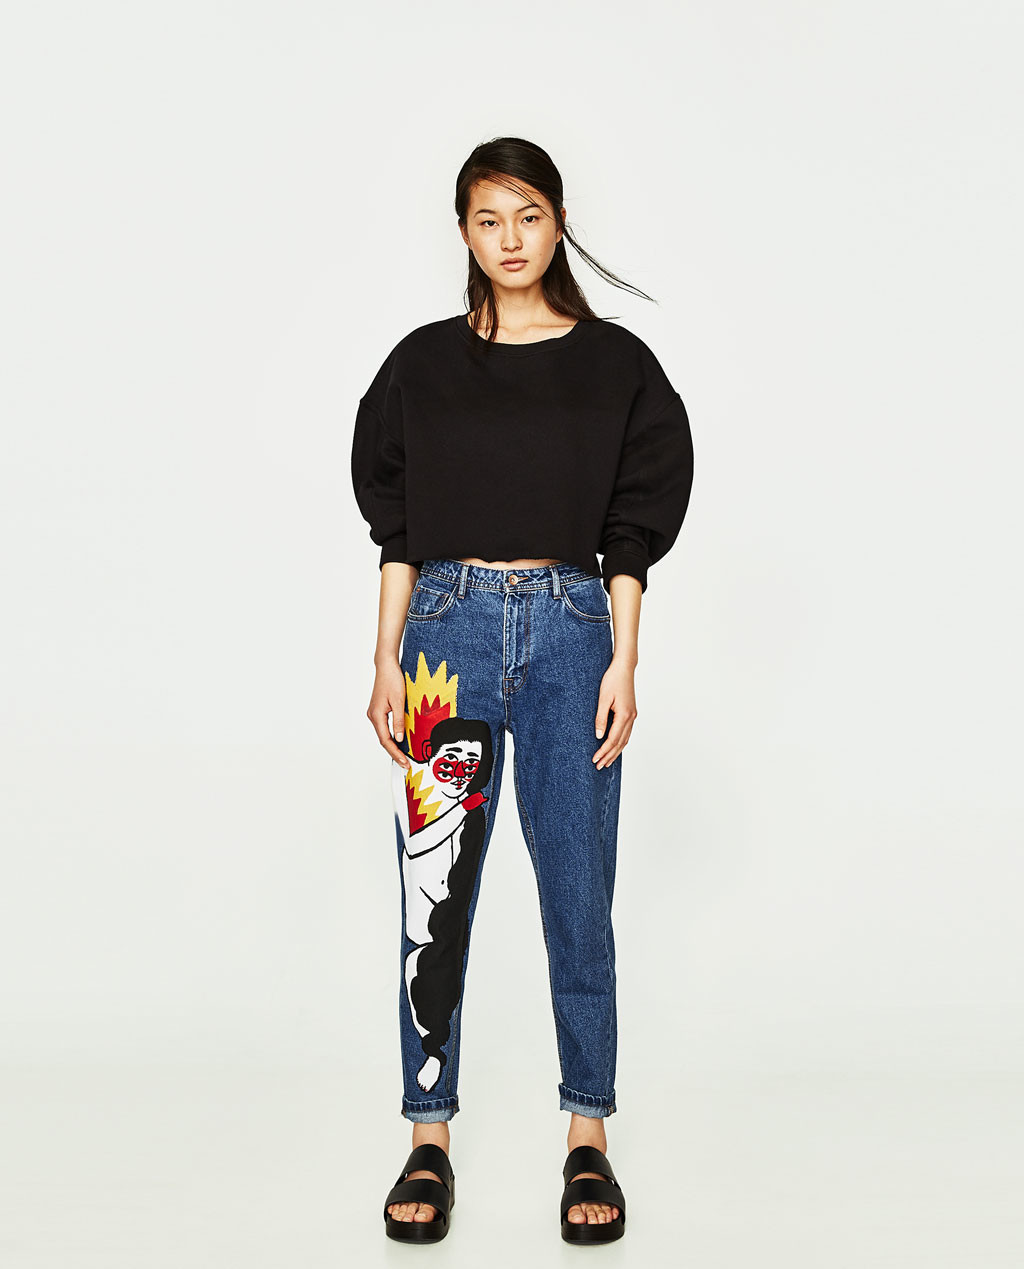 Zara TRF denim